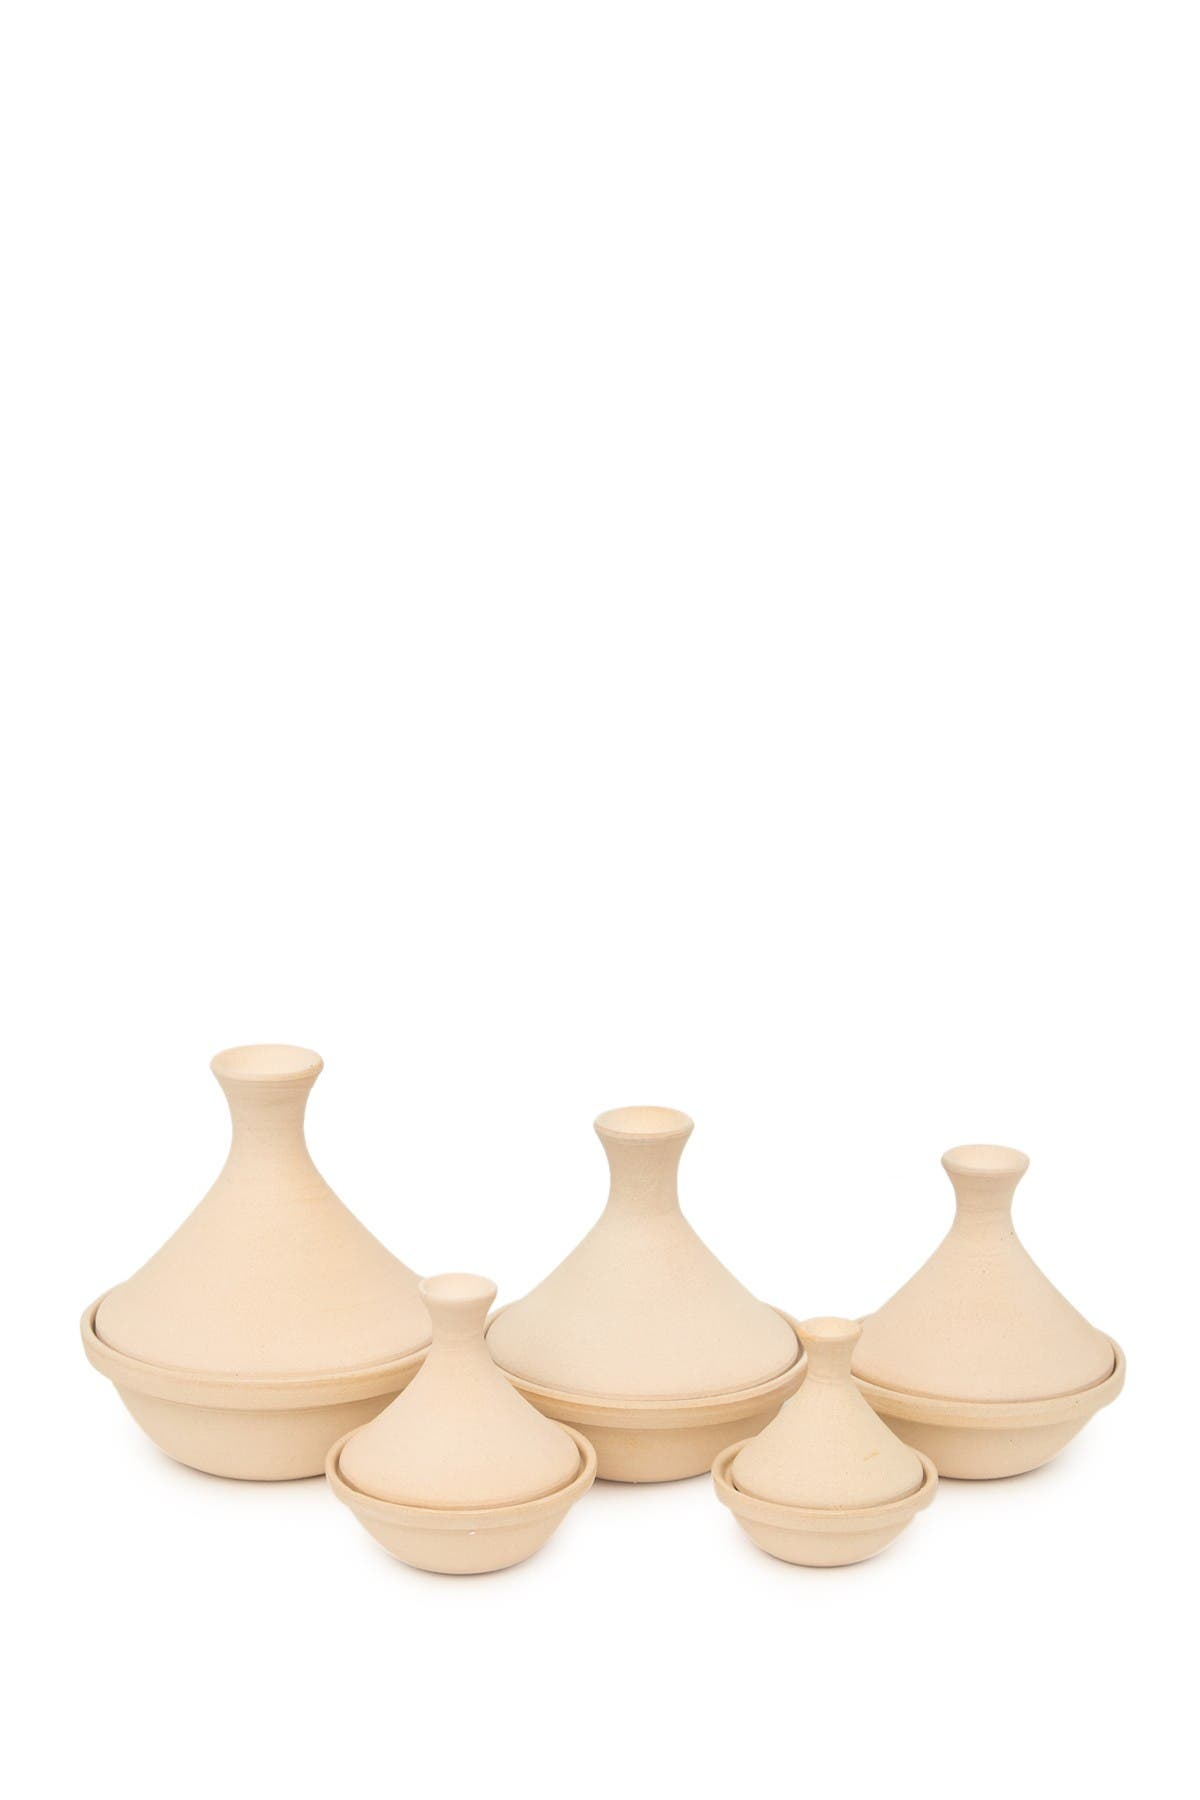 Image of ROOST Safi Stoneware Tagine - Oat - Set of 5